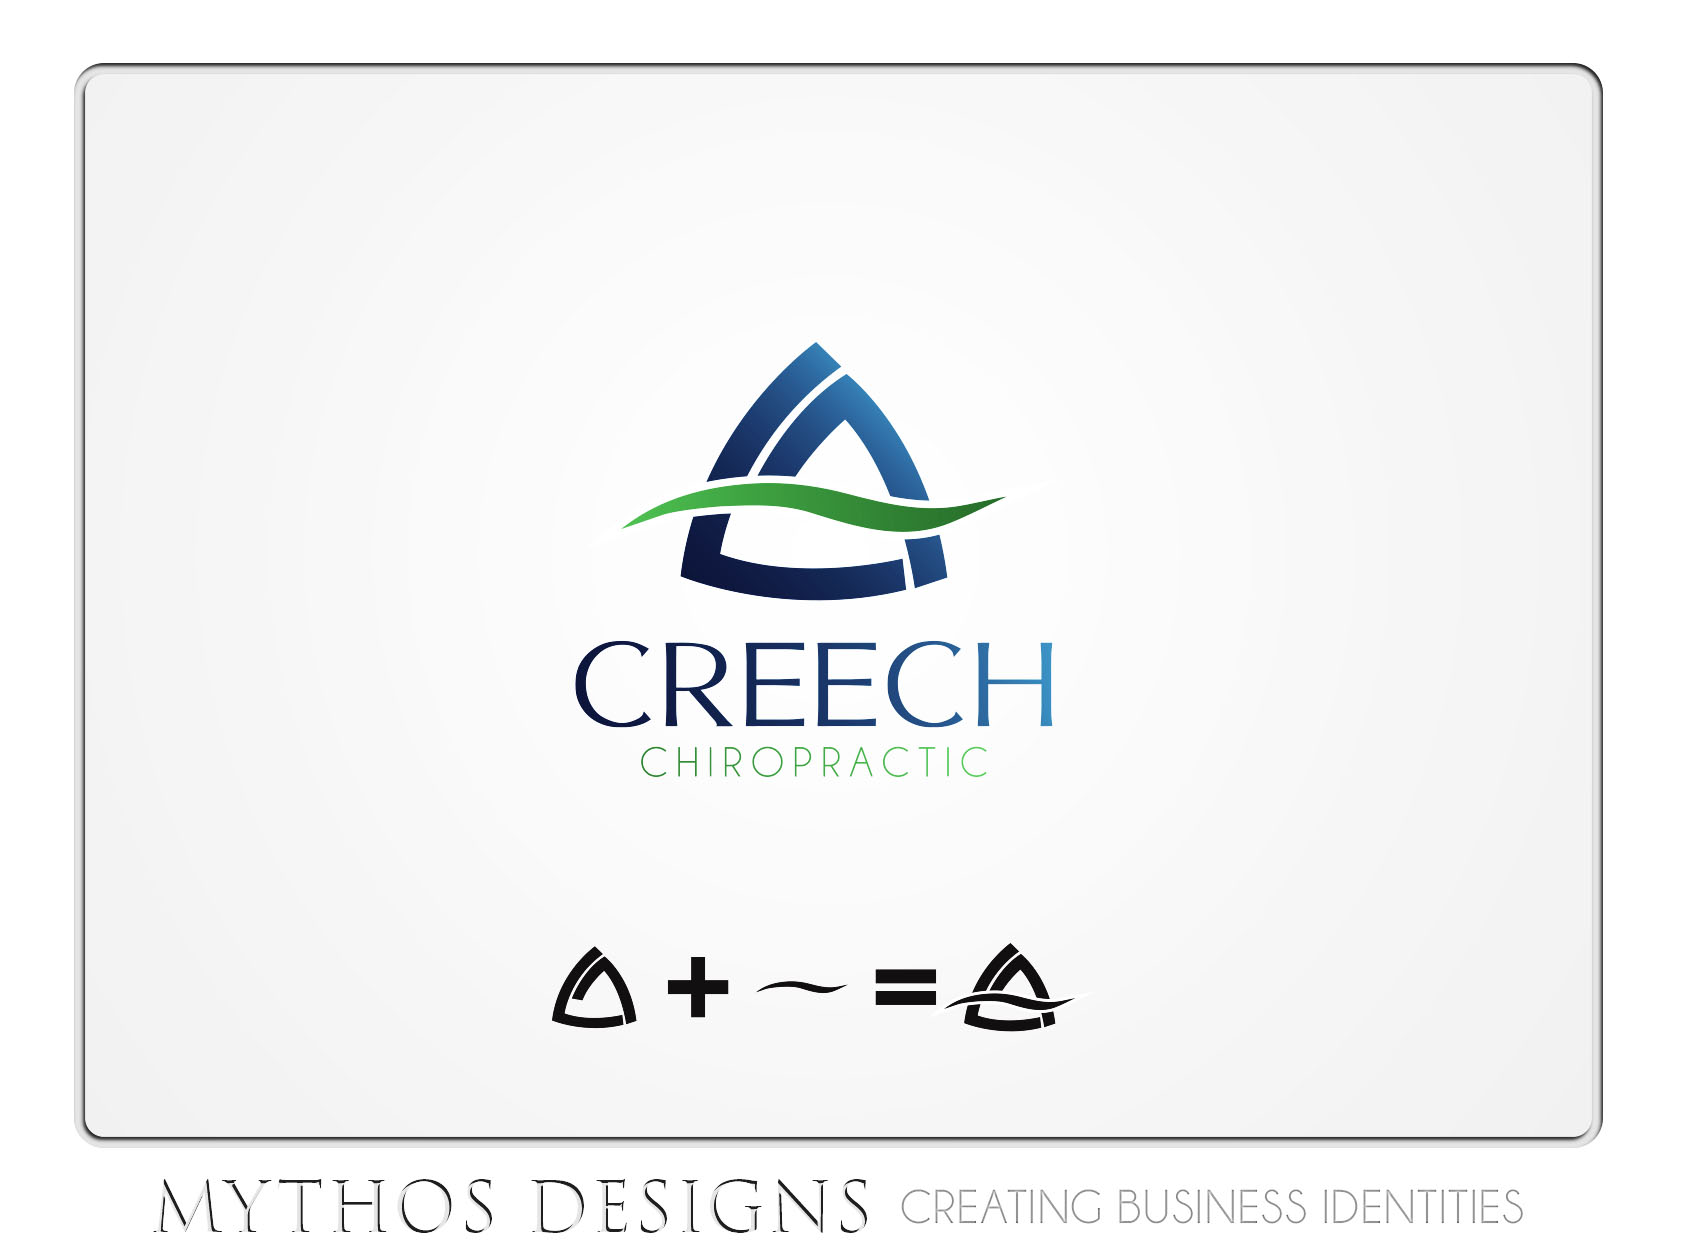 Logo Design by Mythos Designs - Entry No. 105 in the Logo Design Contest Imaginative Logo Design for Creech Chiropractic.